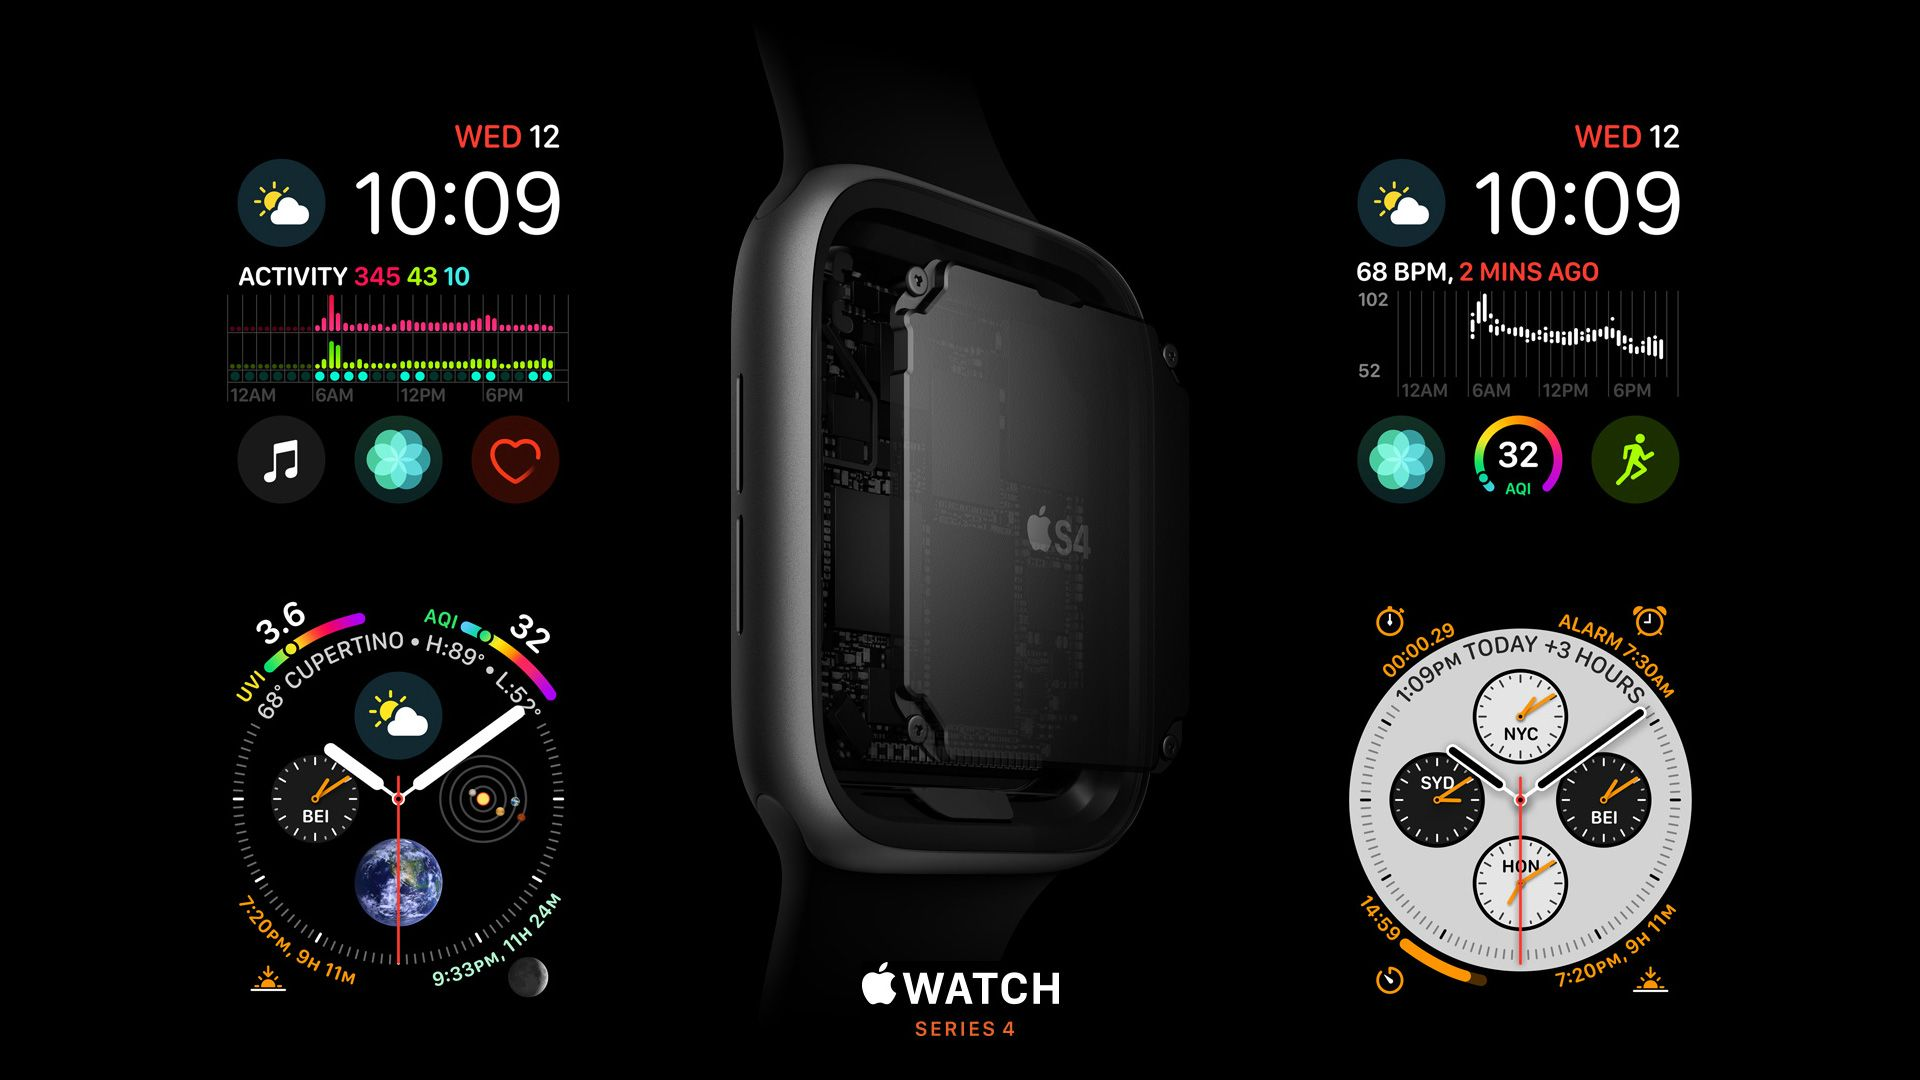 Apple Watch Series 4, S4, Apple September 2018 Event, Apple Watch Series 4, S4, Apple September 2018 Event (horizontal)